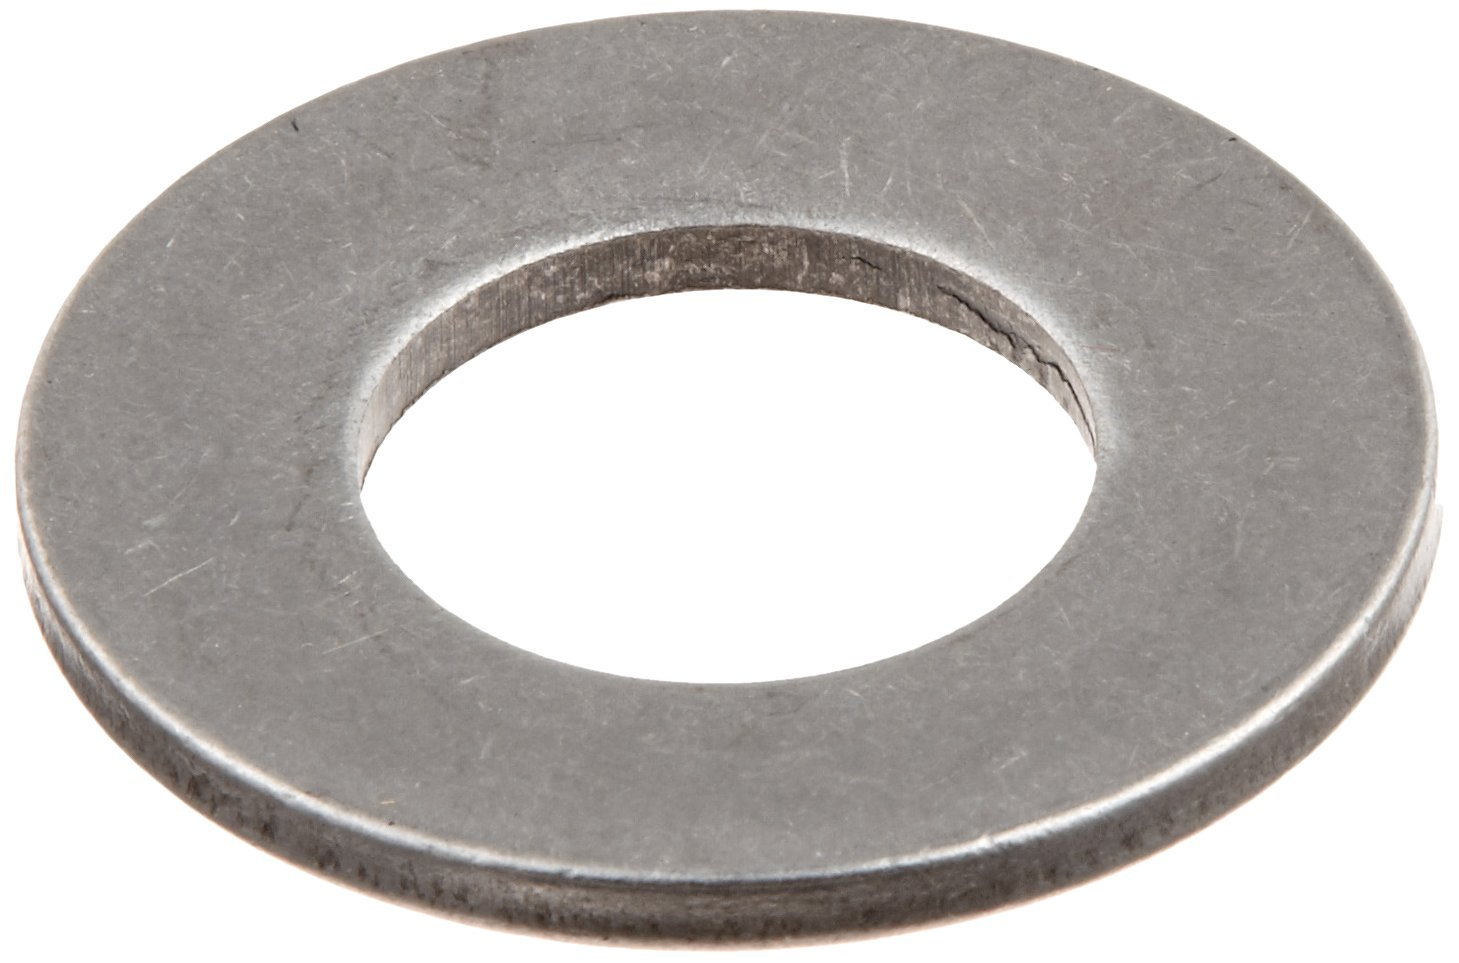 High Carbon Steel Belleville Spring Washers 1.125 inches Inner Diameter 2.25 inches Outside Diameter 0.148 inches Free Height 0.113 inches Compressed Height 730.5 foot pounds Max. Load Pack of 10